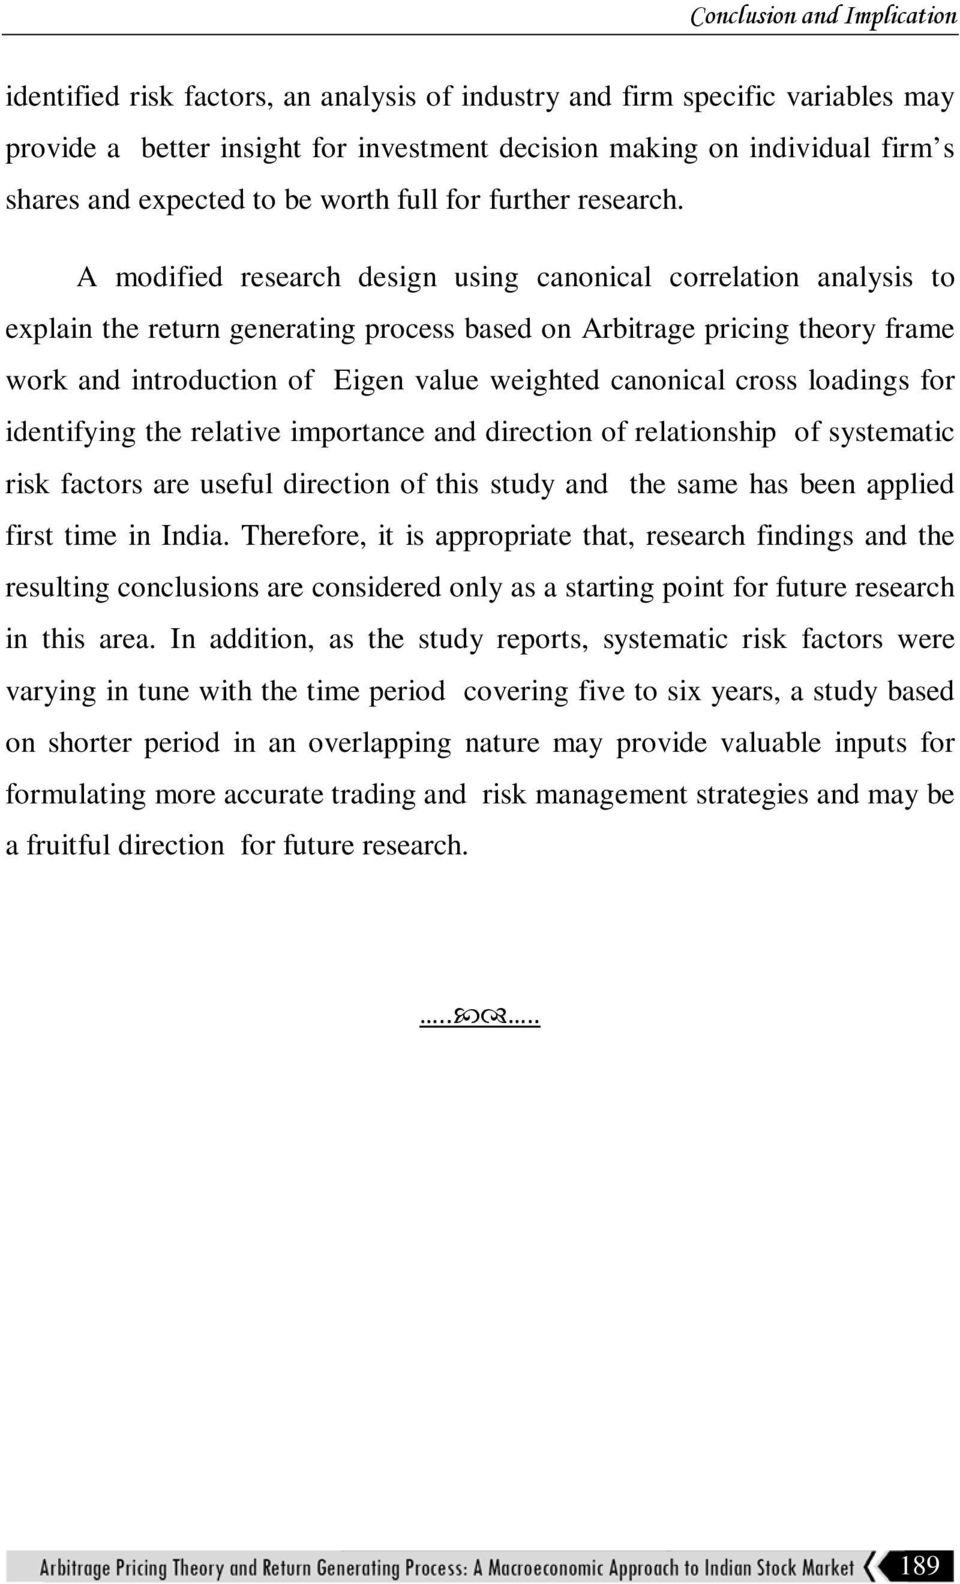 A modified research design using canonical correlation analysis to explain the return generating process based on Arbitrage pricing theory frame work and introduction of Eigen value weighted